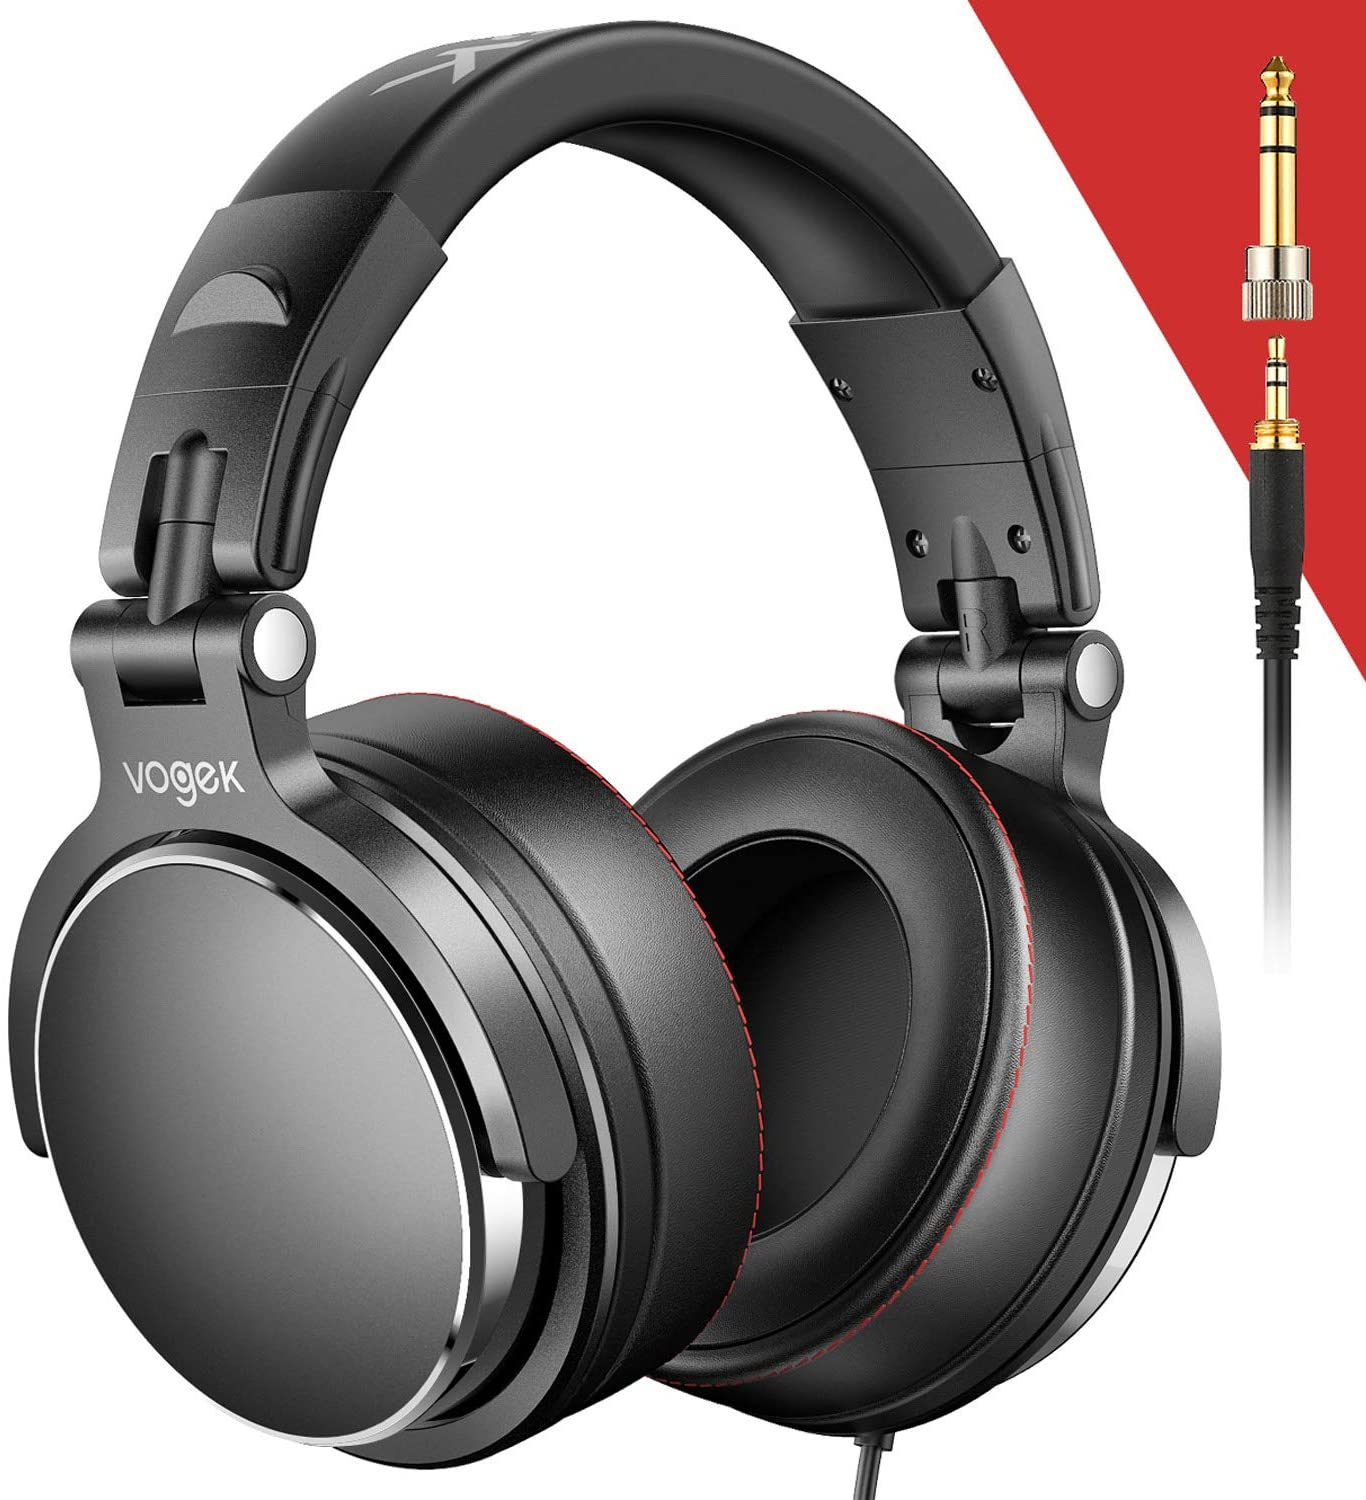 Vogek Over-Ear DJ Headphones, Professional Studio Monitor Mixing DJ Headset with Protein Leather Memory Foam Ear Pads, Stereo Sound for Electric Drum Piano Guitar AMP, 50mm Neodymium Drivers